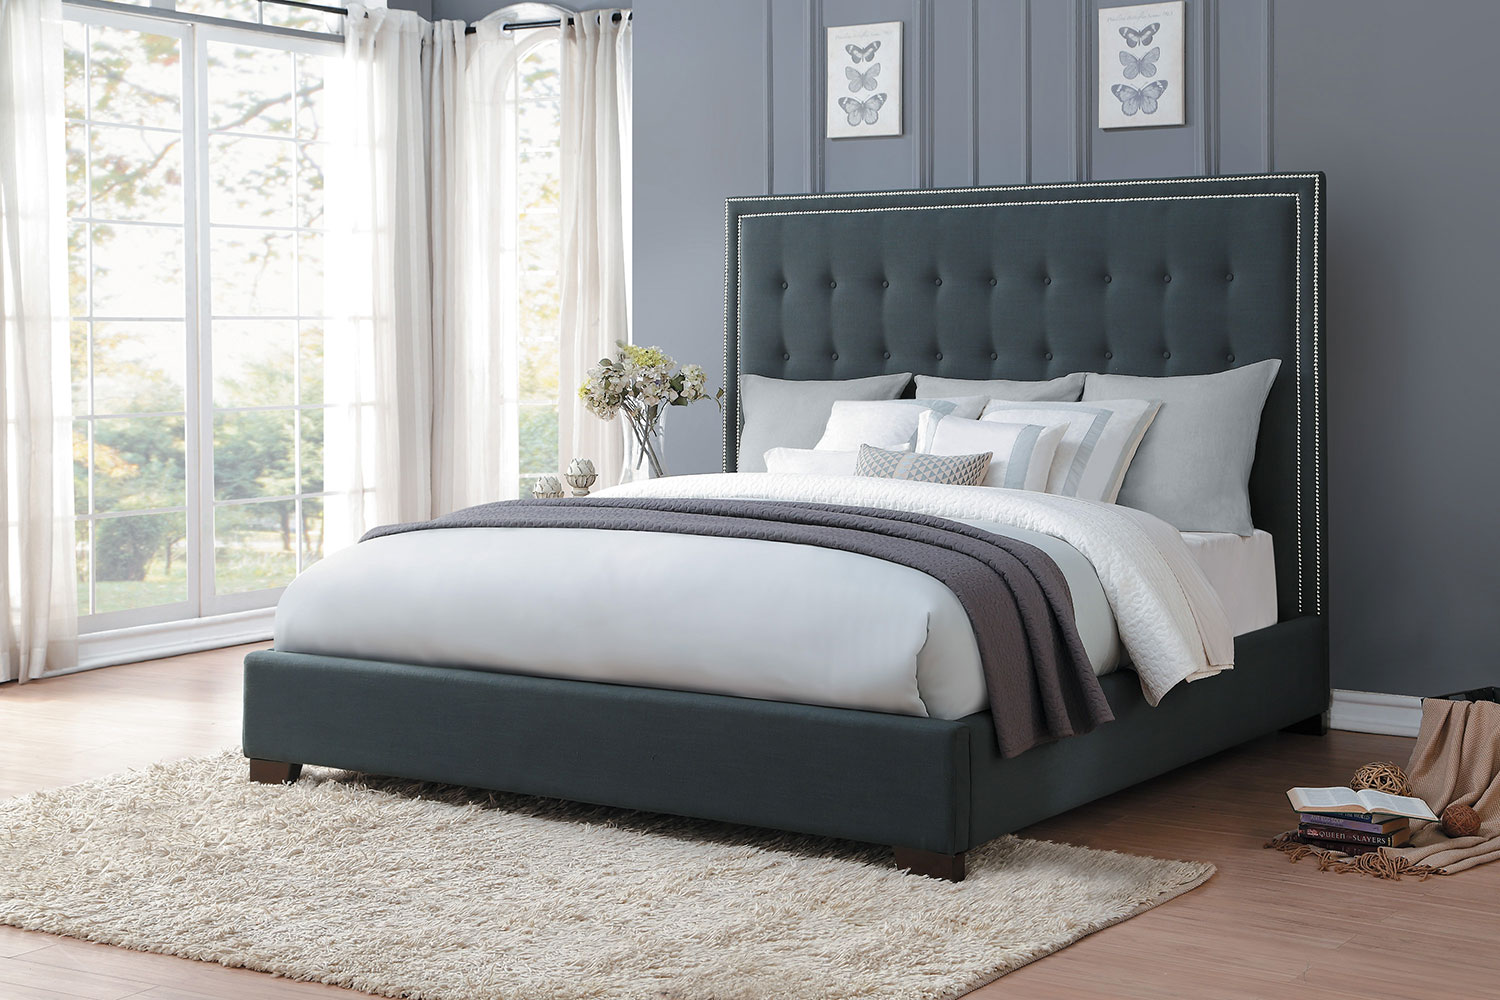 Homelegance Jervis Upholstered Bed